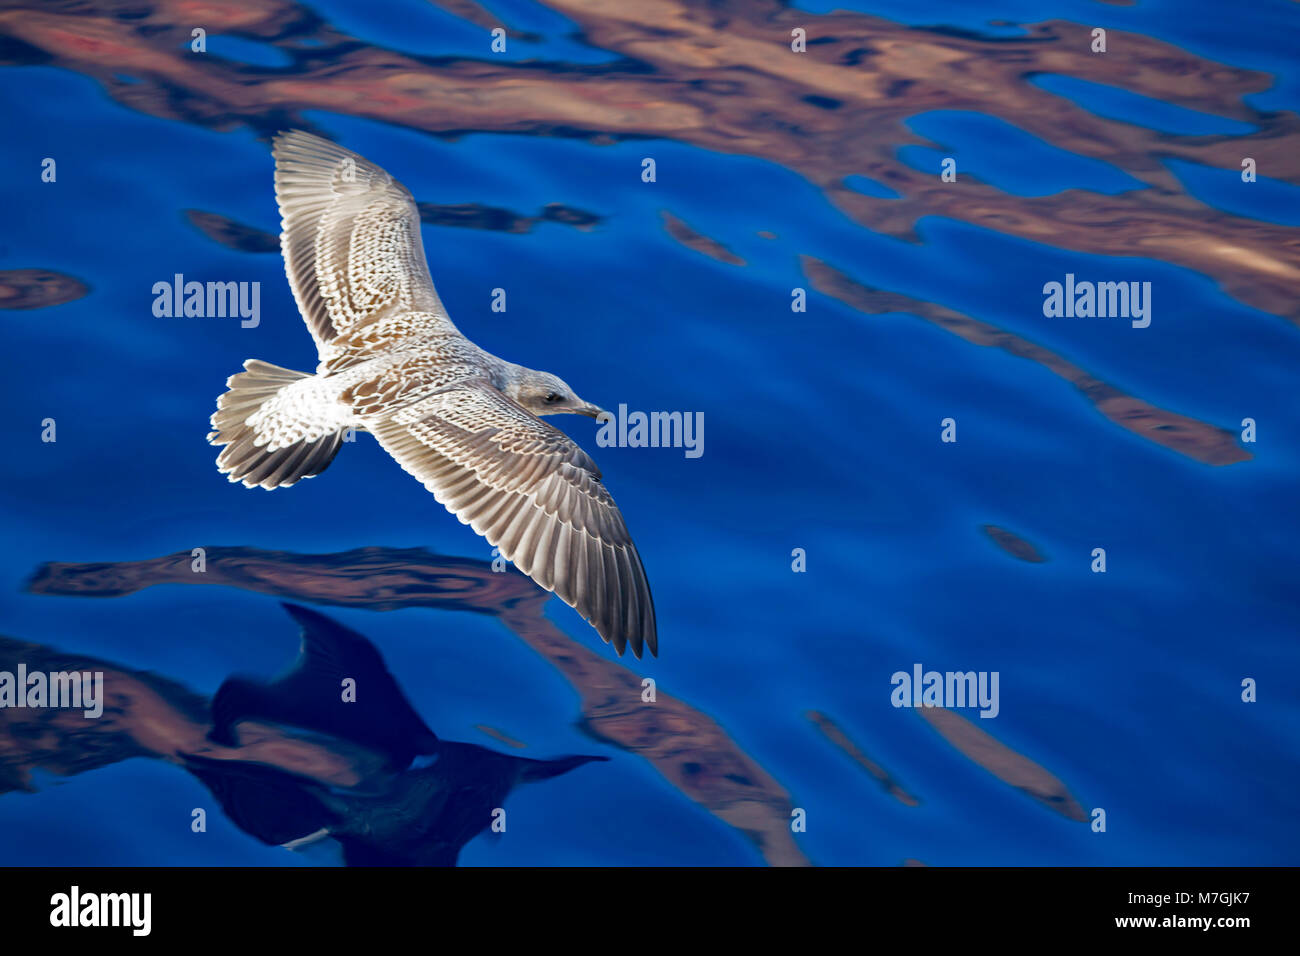 The western gull, Larus occidentalis, is a large white-headed gull that lives on the west coast of North America. - Stock Image